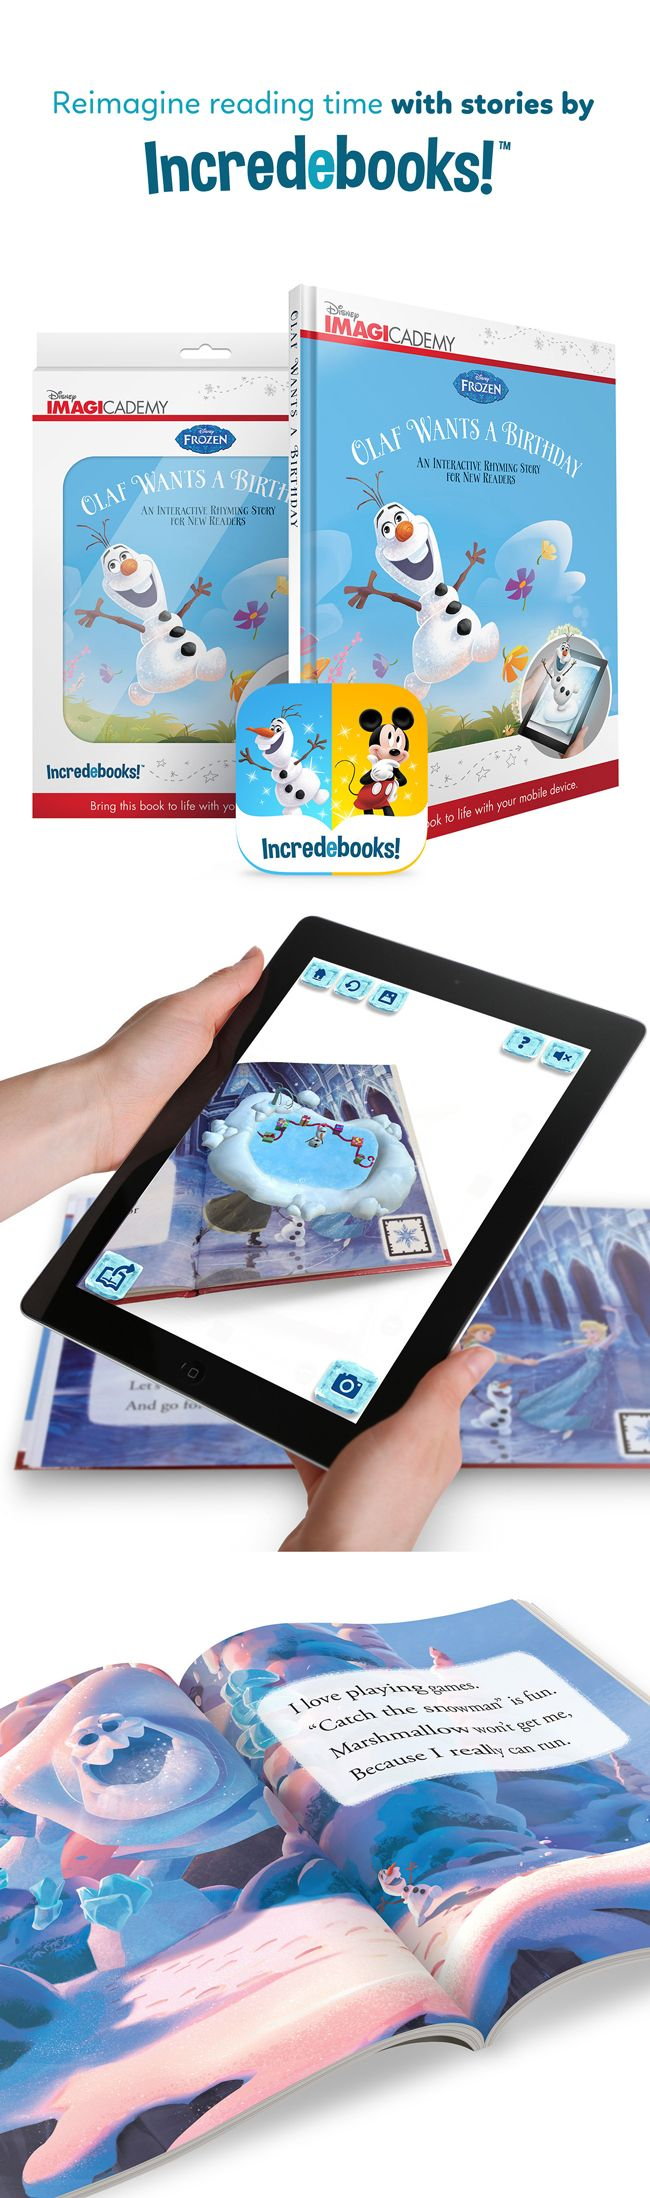 Re-imagine reading time with stories by Incredebooks. Teach your child about rhyme and rhythm in this interactive book. Comes with a free augmented reality app that brings you extra 3D content and brings Olaf to life